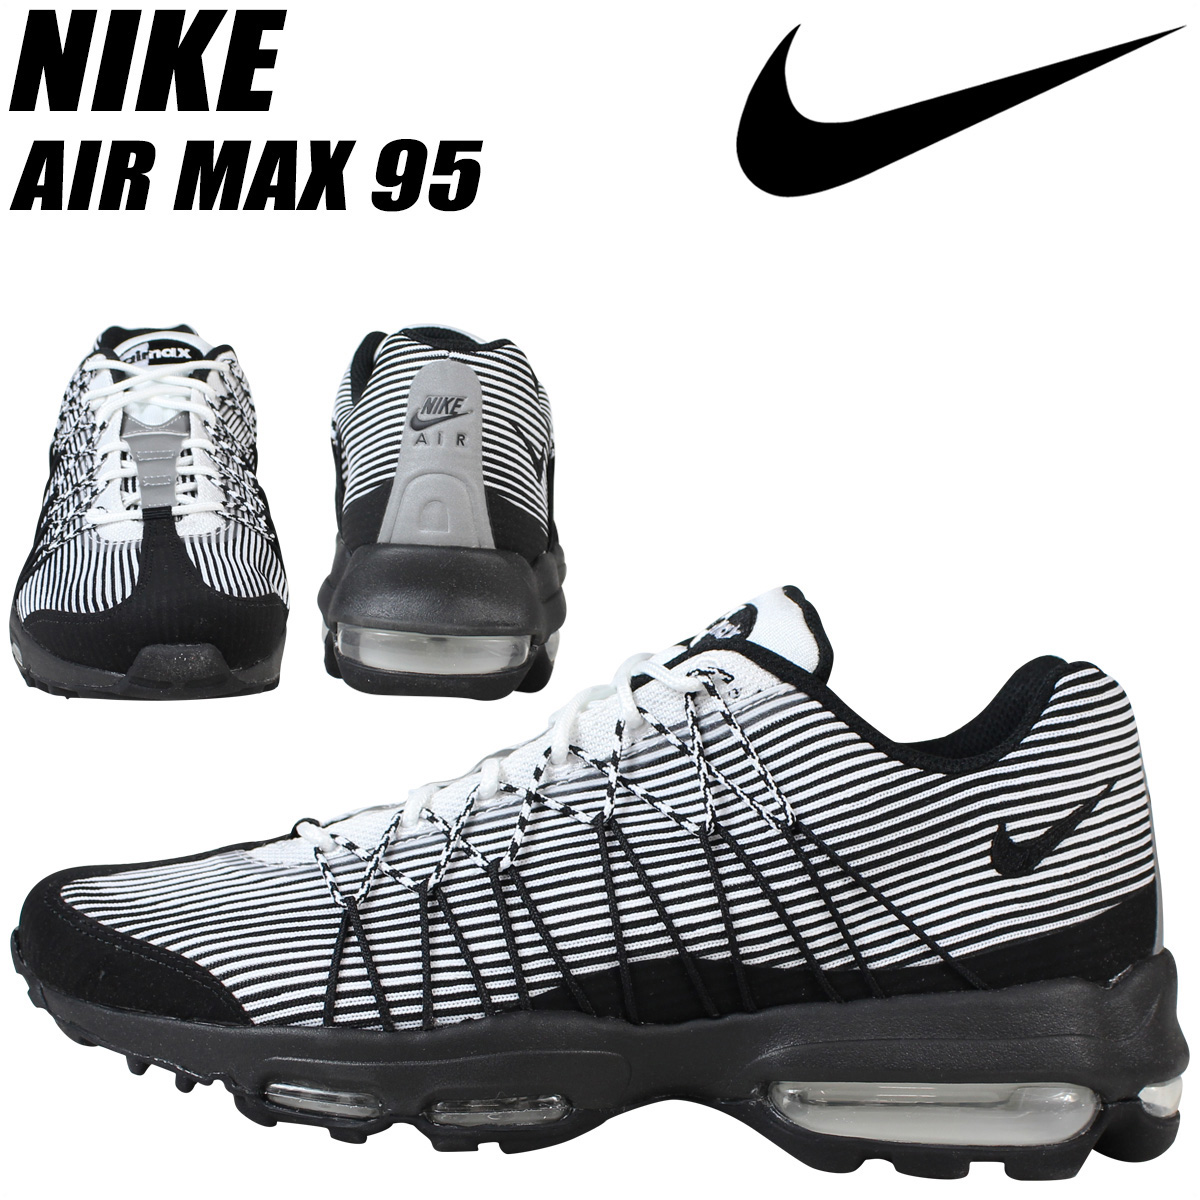 ALLSPORTS | Rakuten Global Market: NIKE Nike Air Max sneakers AIR MAX 95  ULTRA JACQUARD Air Max 95 749771-101 men\u0027s shoes black